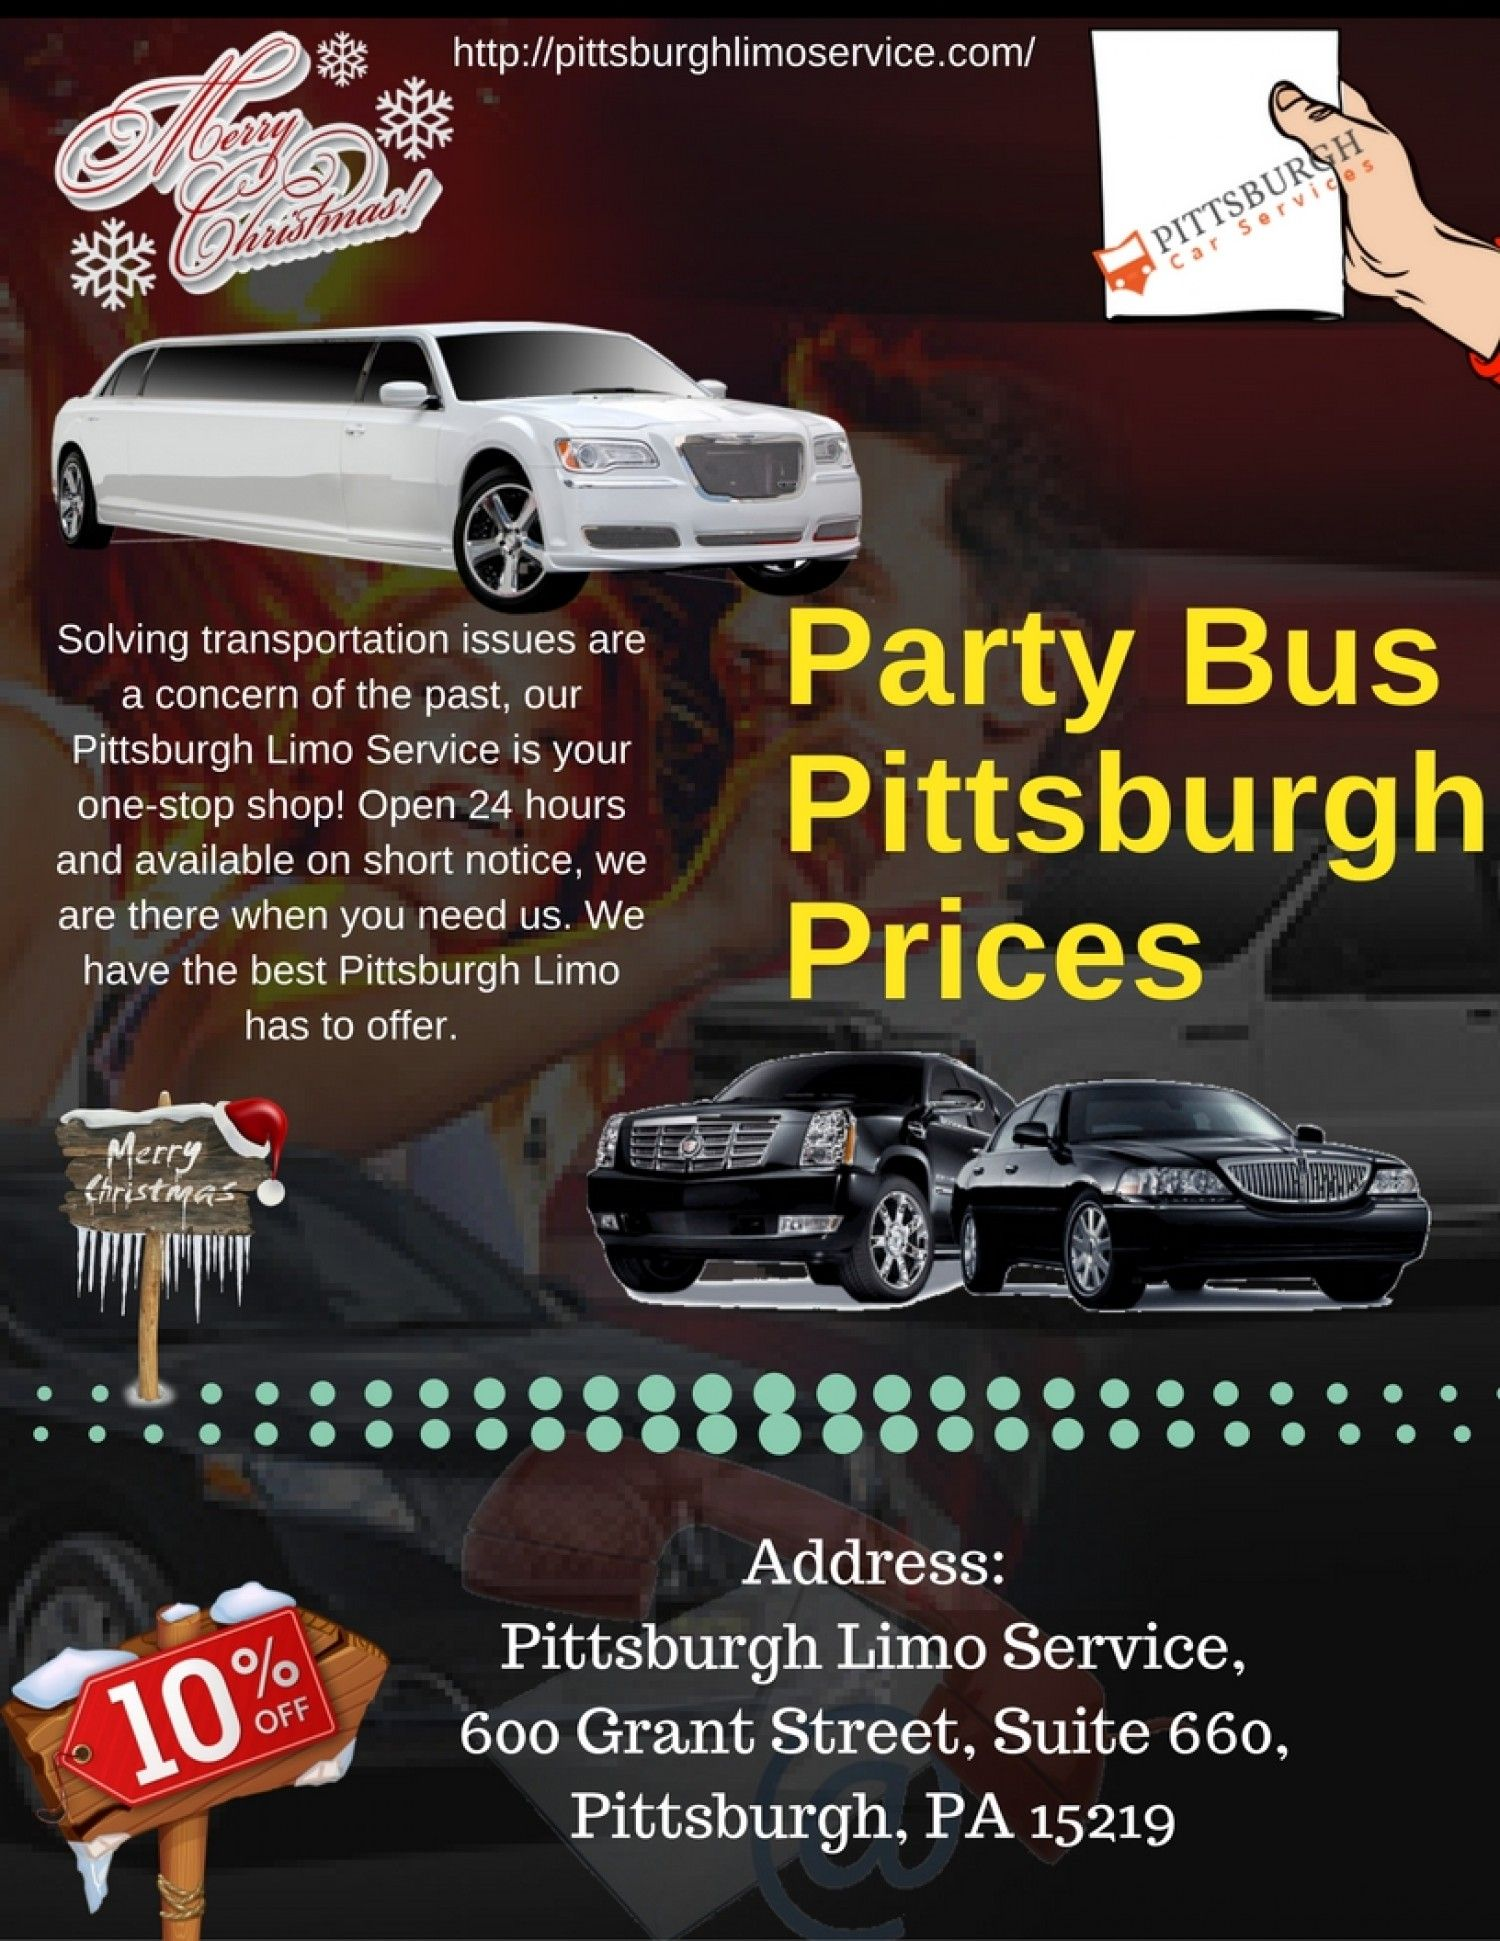 Party Bus Pittsburgh Prices Infographic Pittsburghlimoservice